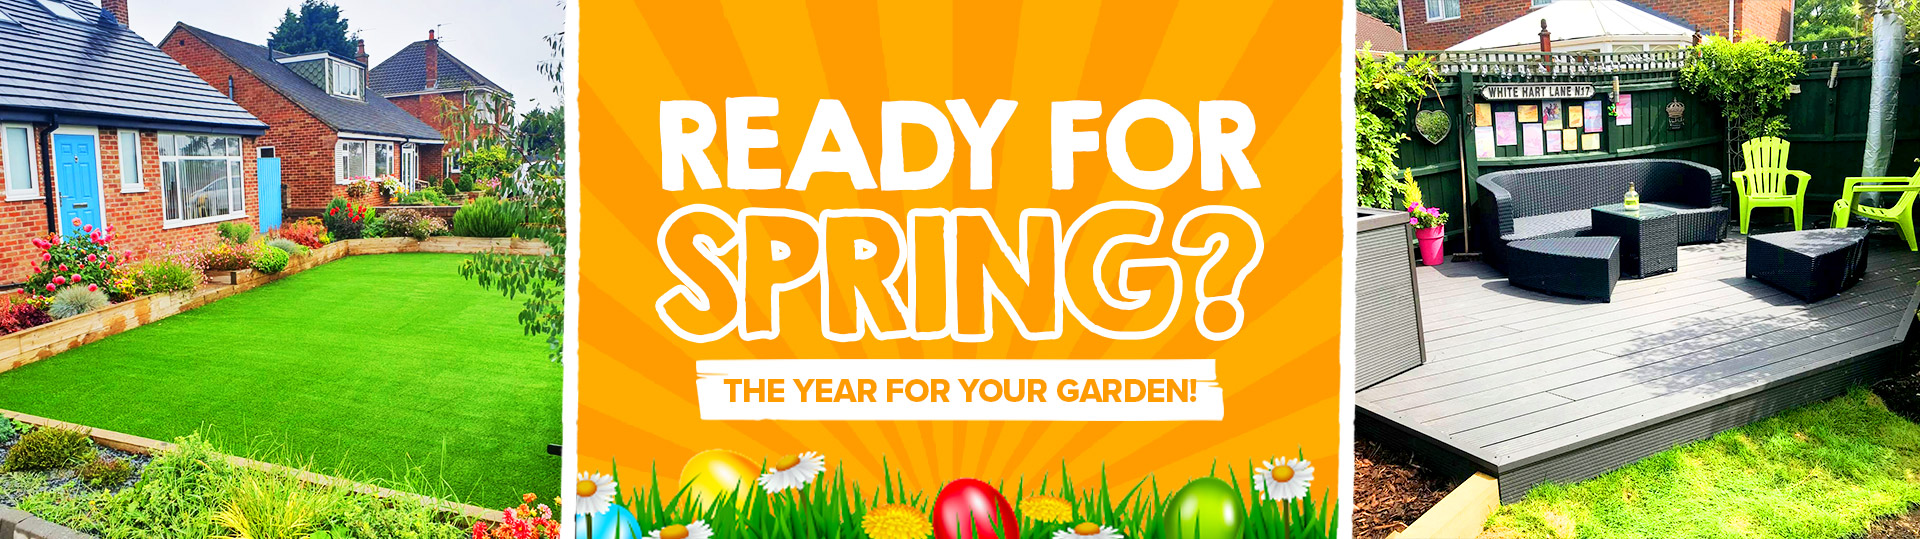 ready for spring (easter edition) march 2021 banner